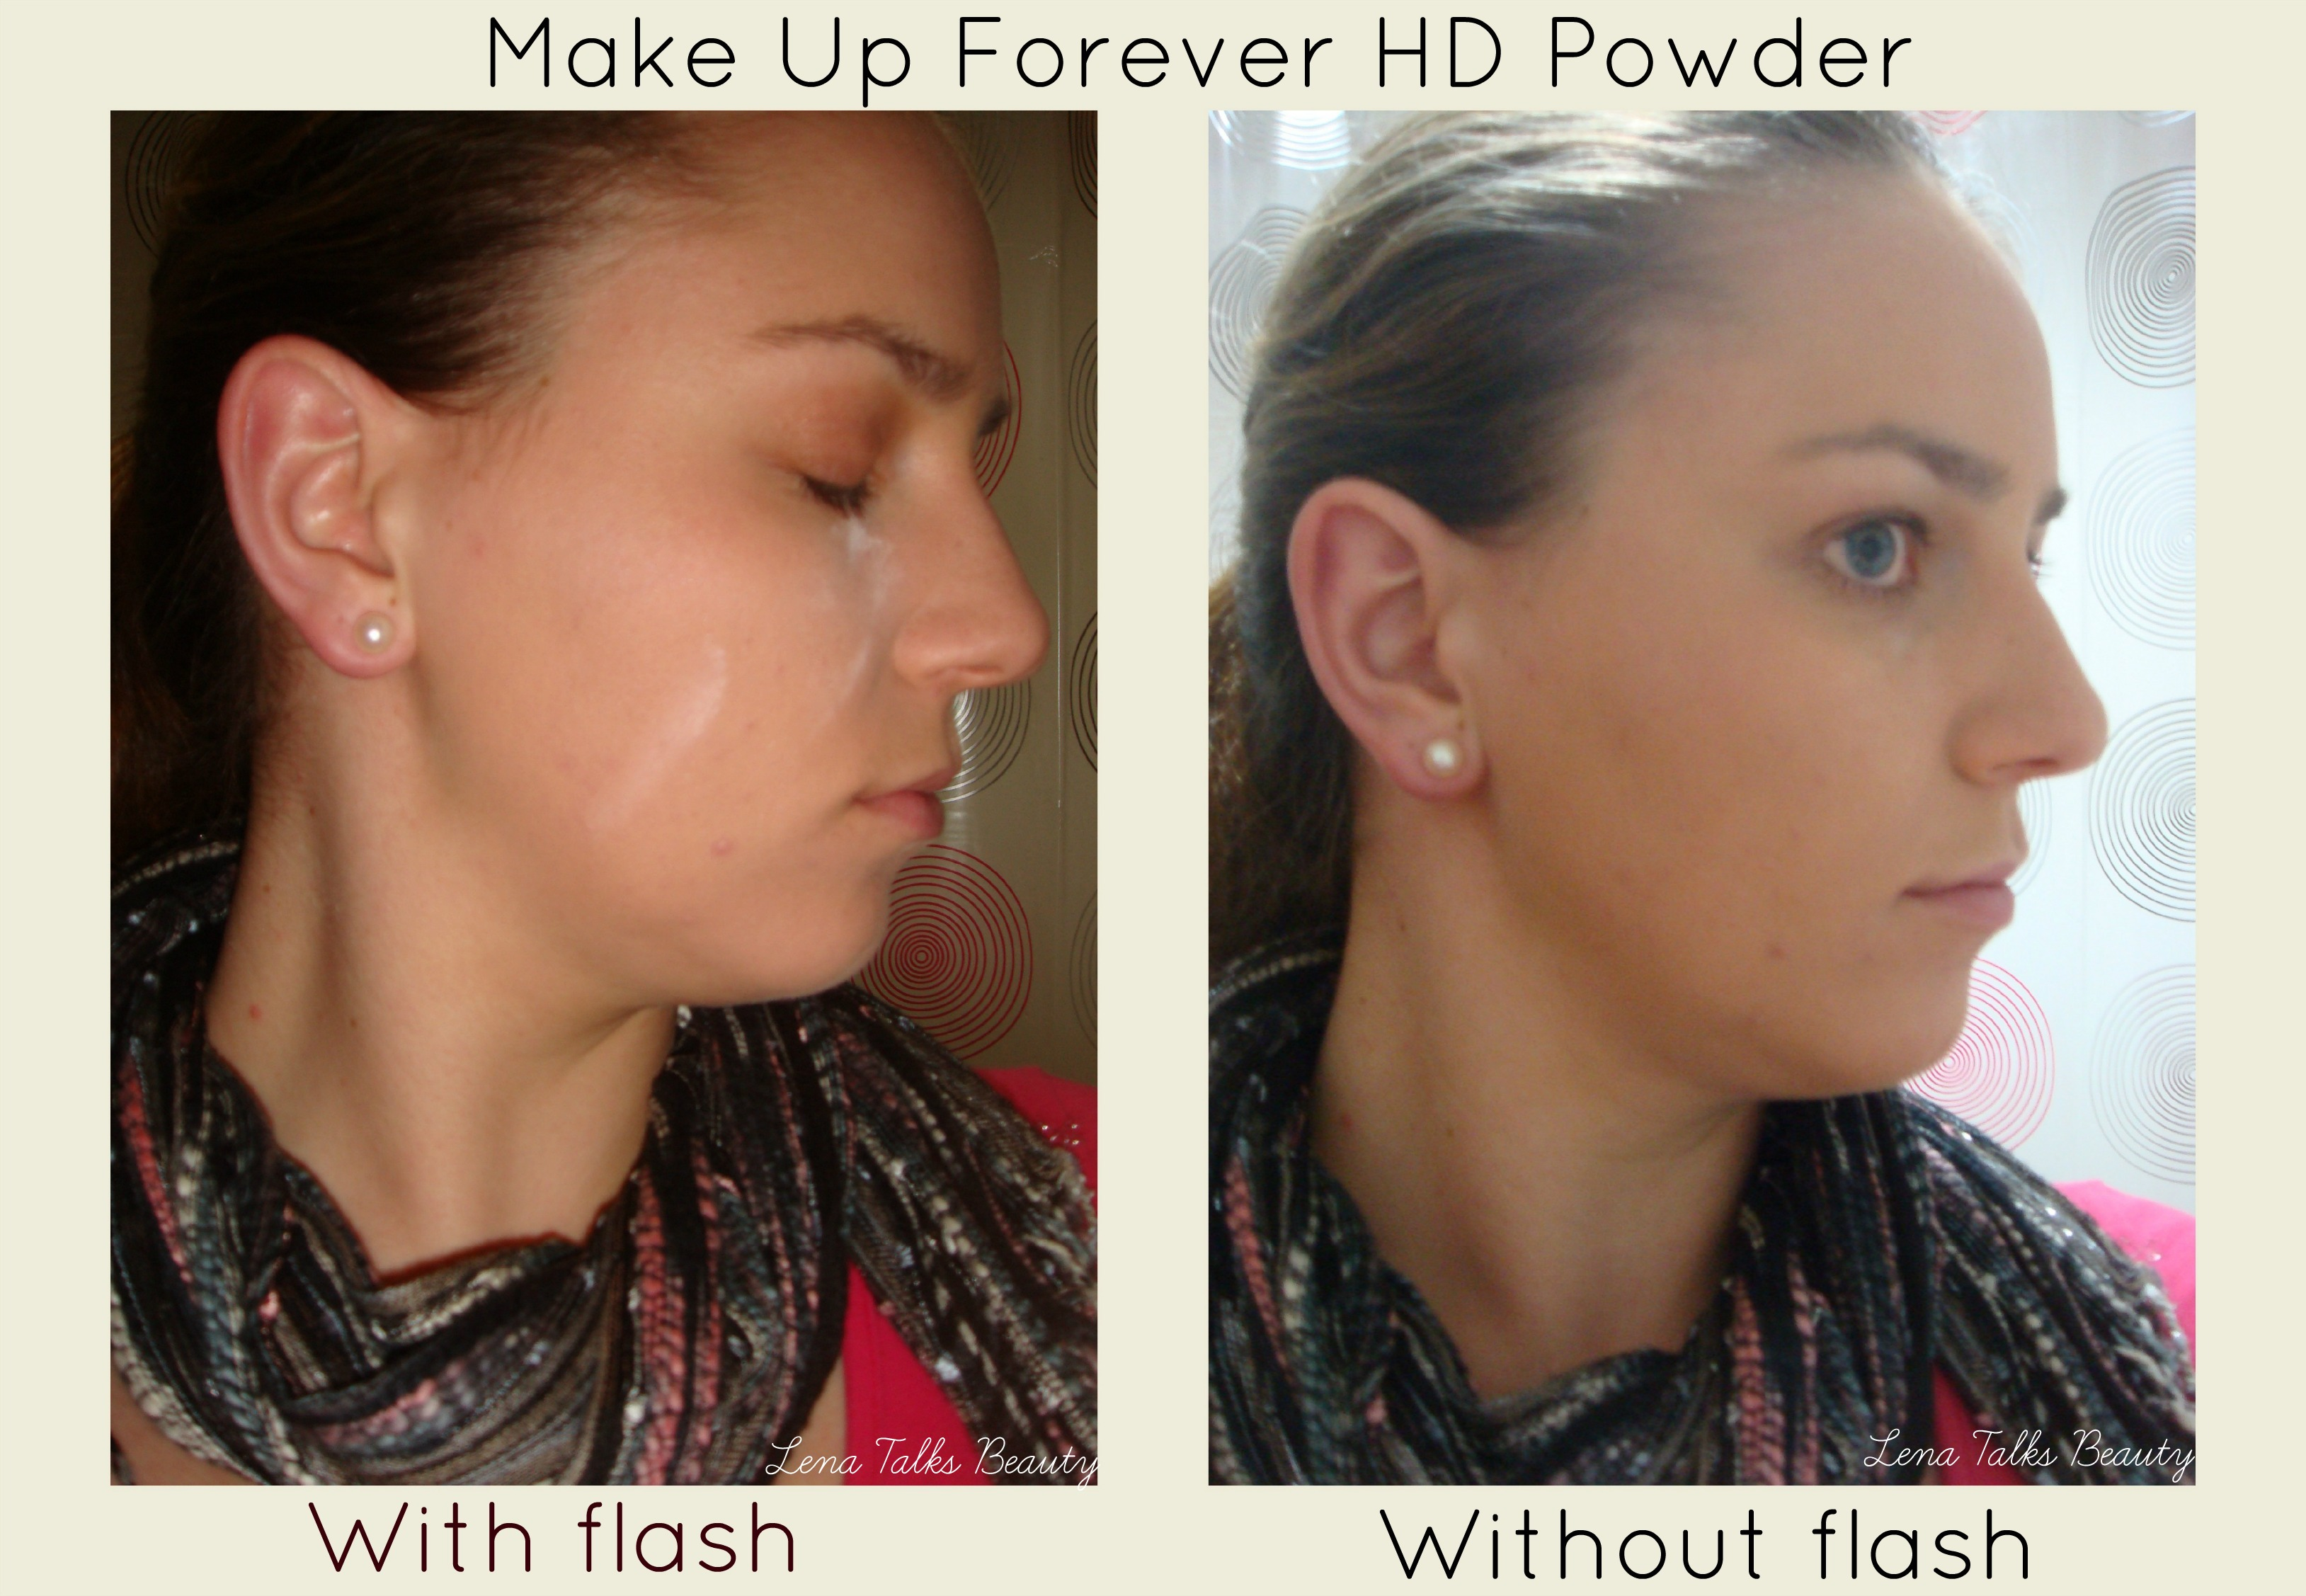 ... mufe hd powder is 100 silica which is a spherical mineral that gives a silky slip ...